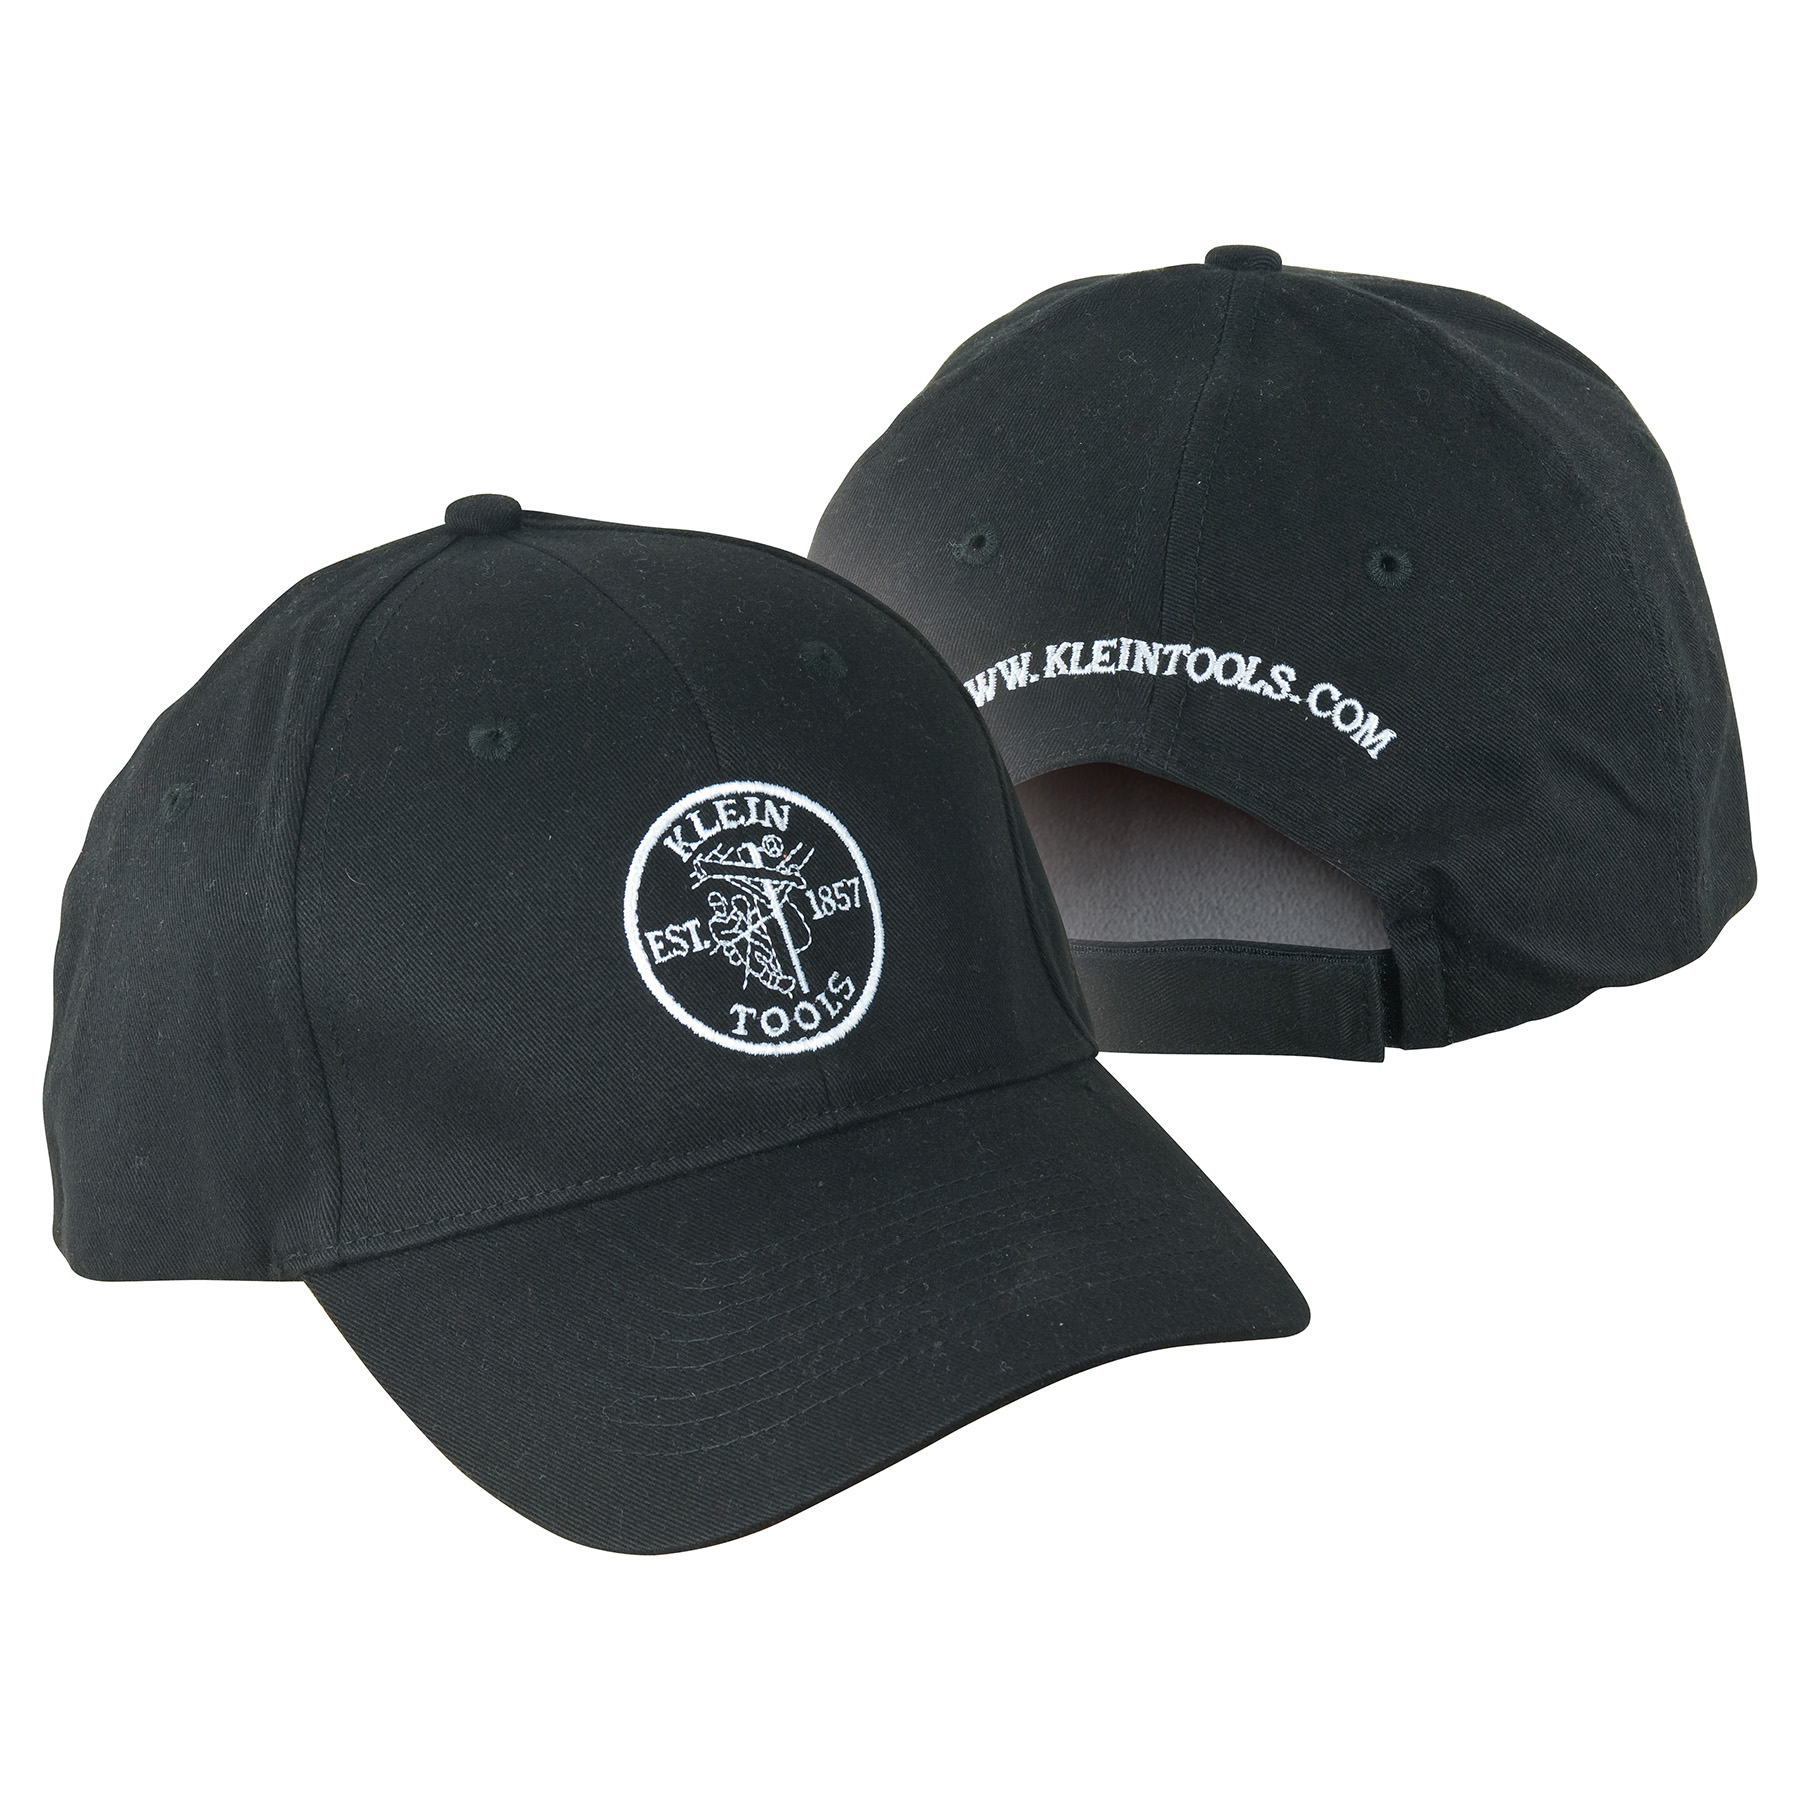 KLEIN 98341 KLEIN TOOLS BLACK HAT WITH KLEIN LINEMAN LOGO